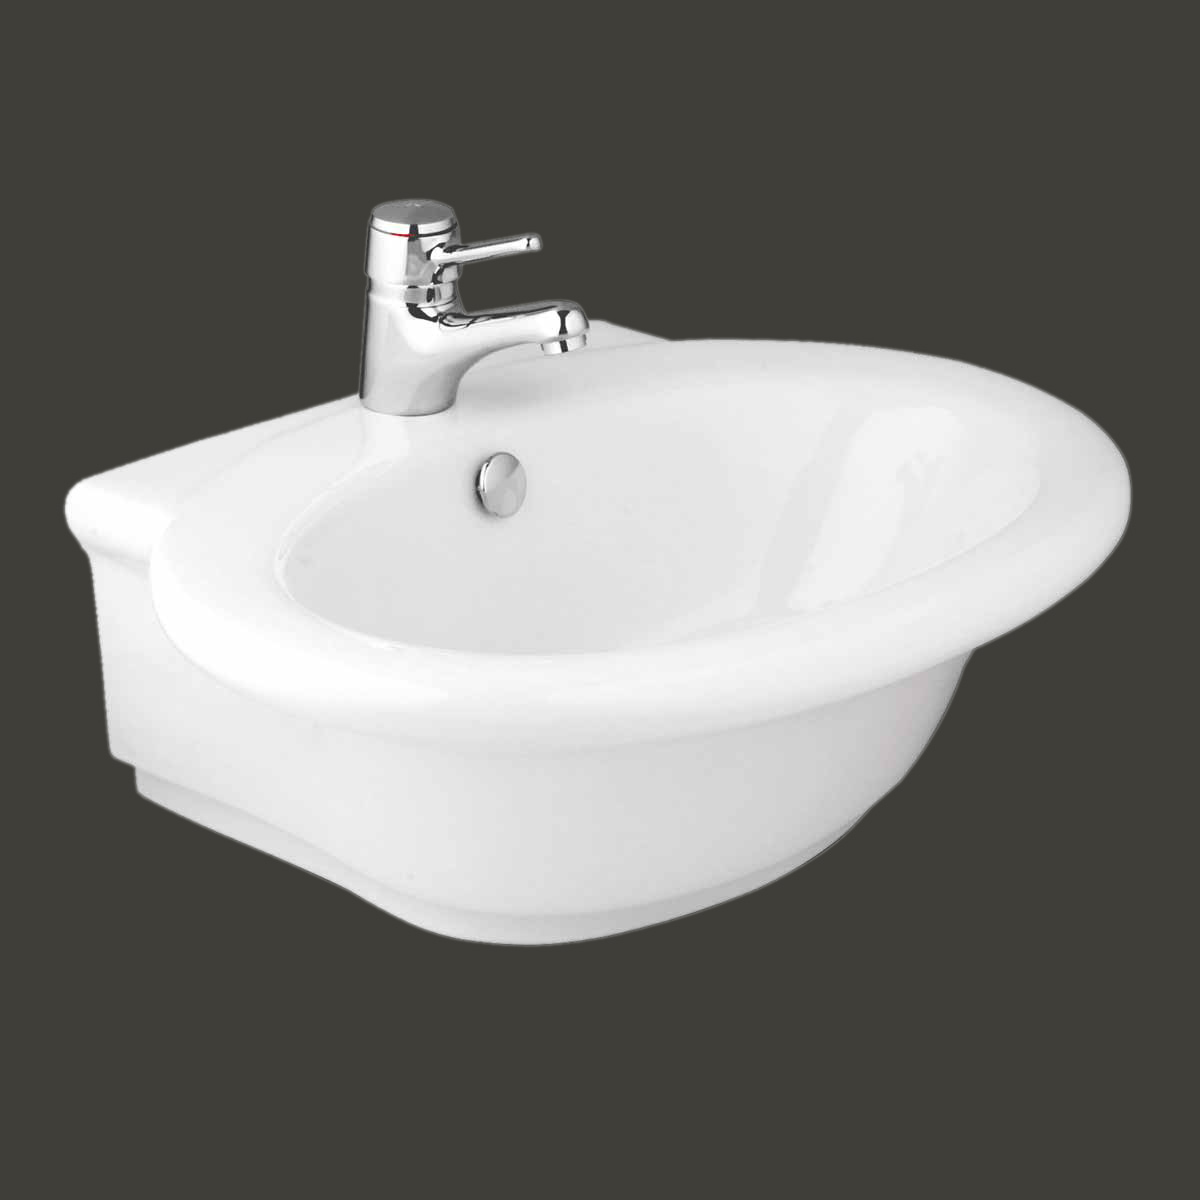 White Bathroom Vessel Sink Vitreous China Single Hole Faucet Gloss ...